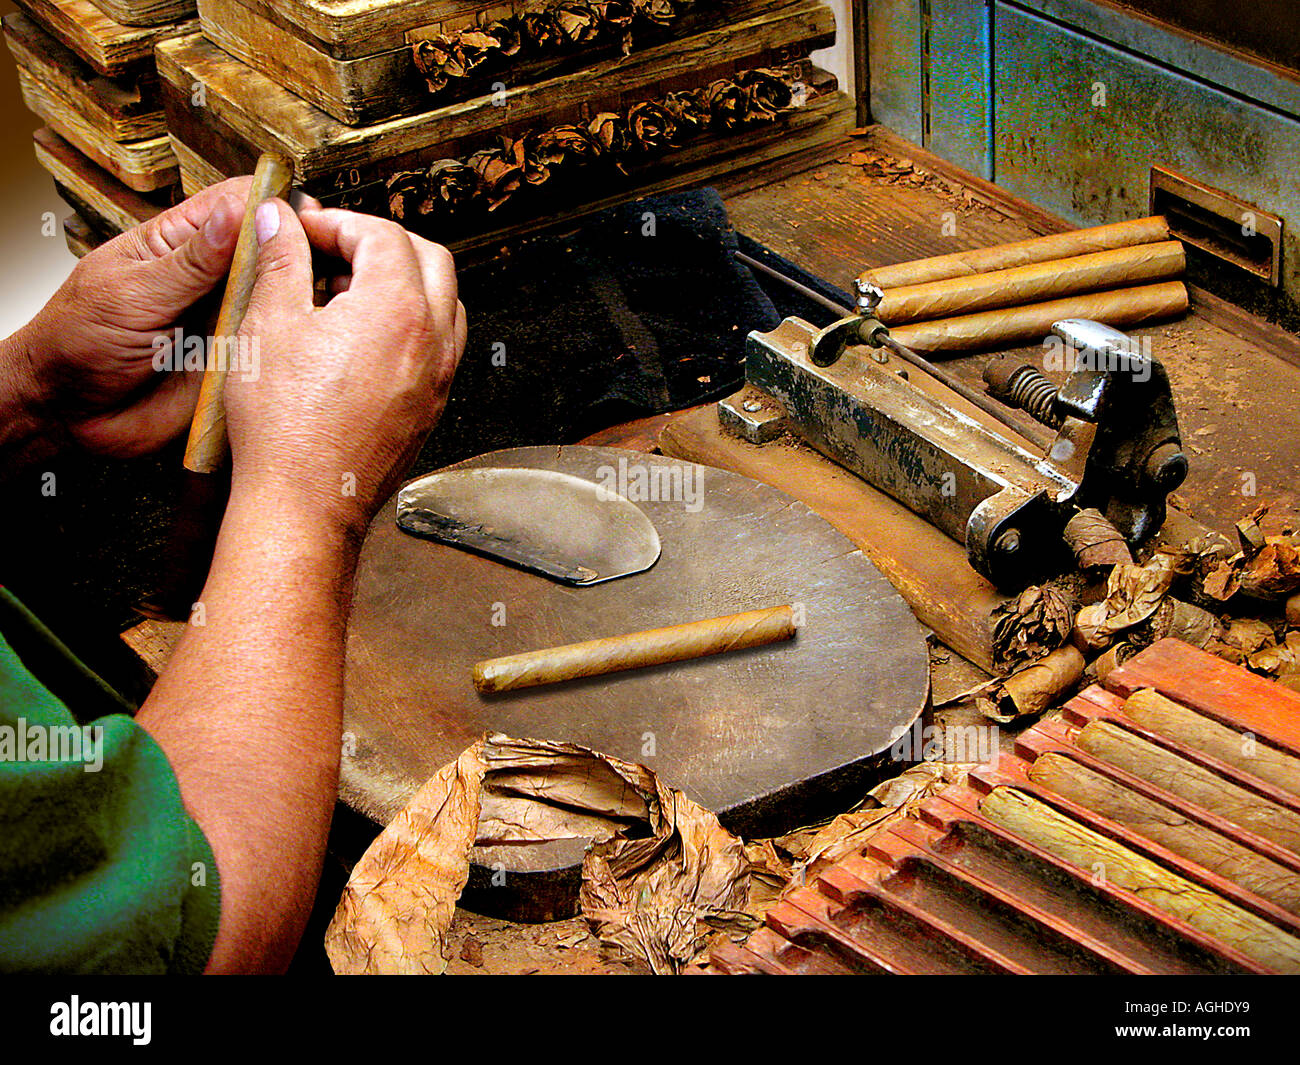 A cigar maker rolling handmade cigars Stock Photo: 8122232